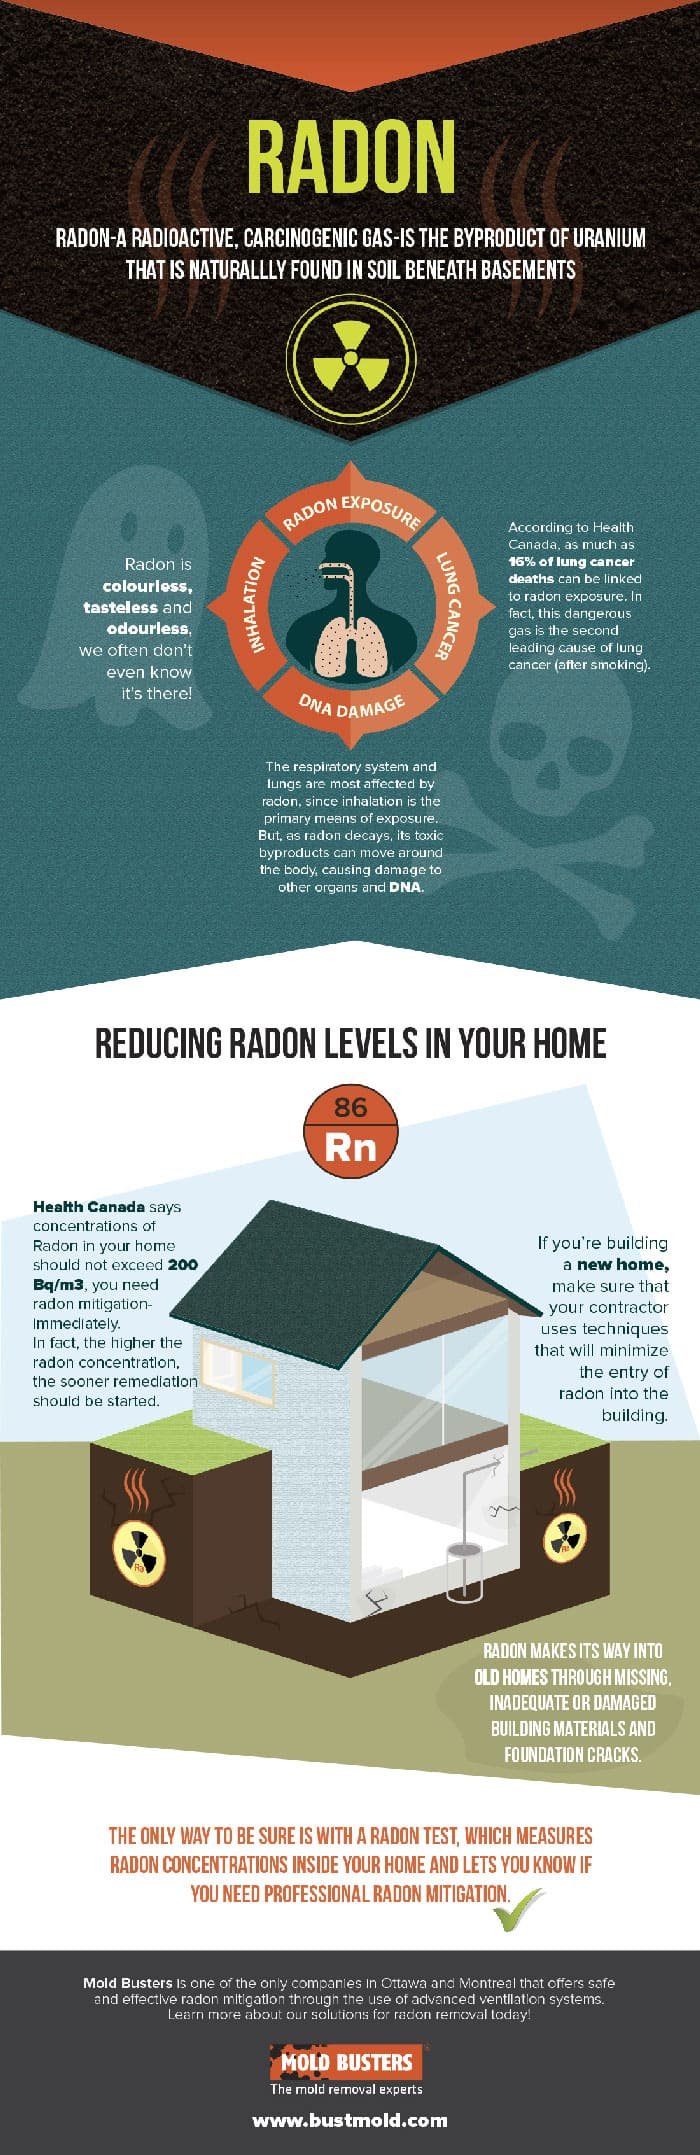 Radon Gas and its control in your Home Infographic